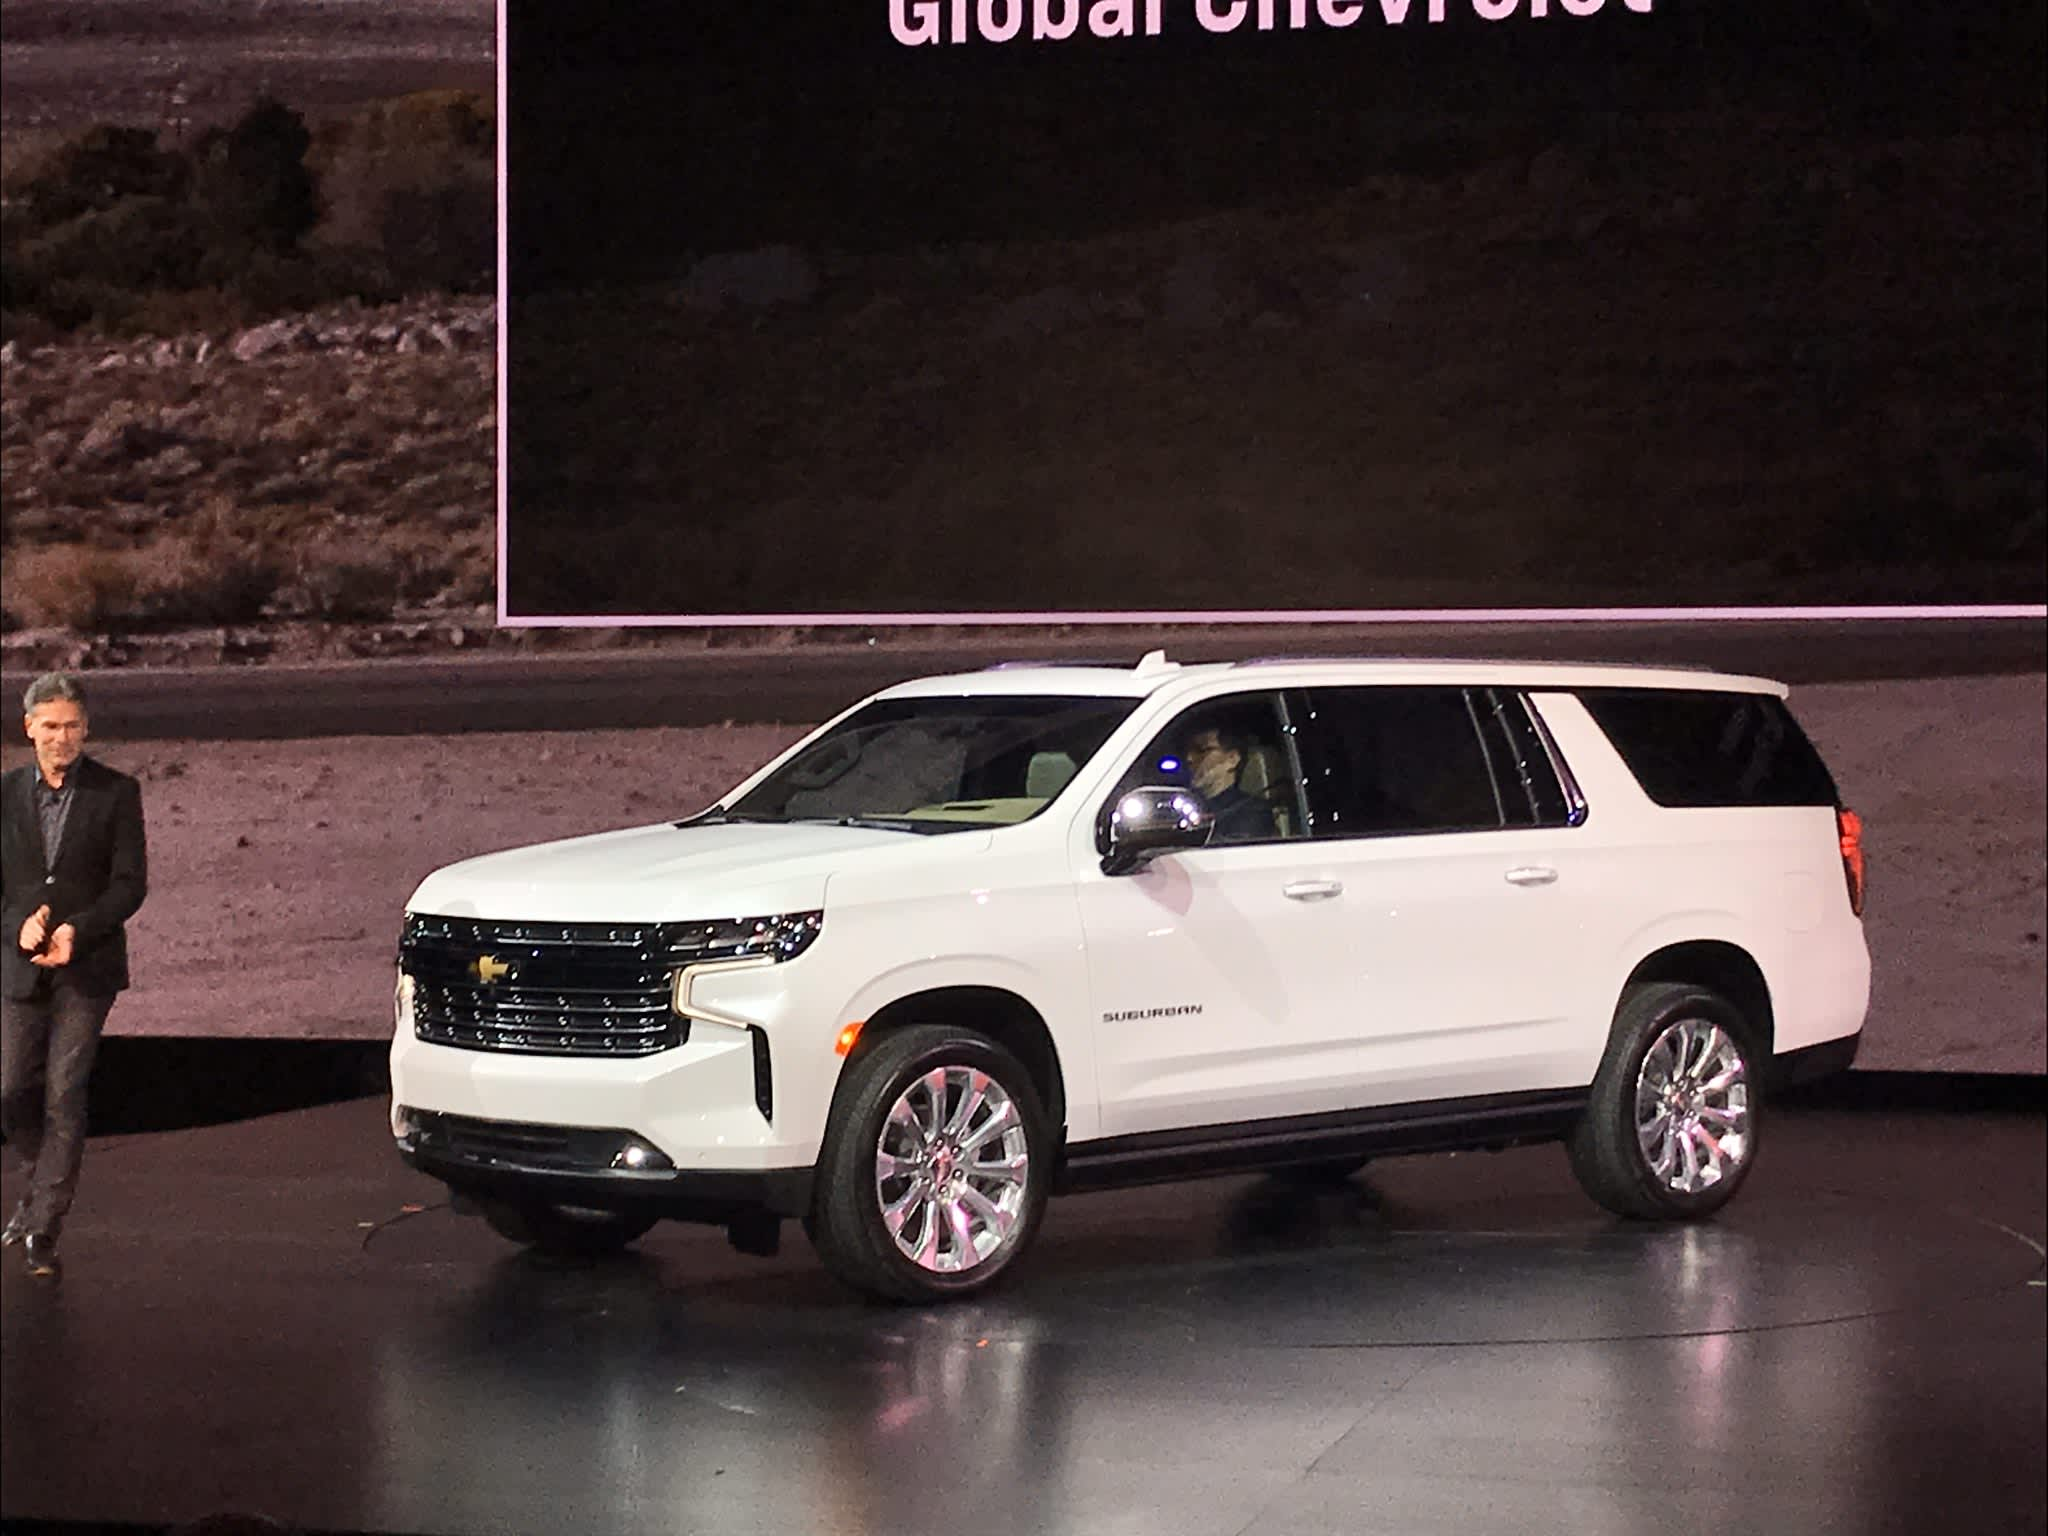 GM unveils new Chevrolet Tahoe, Suburban SUVs